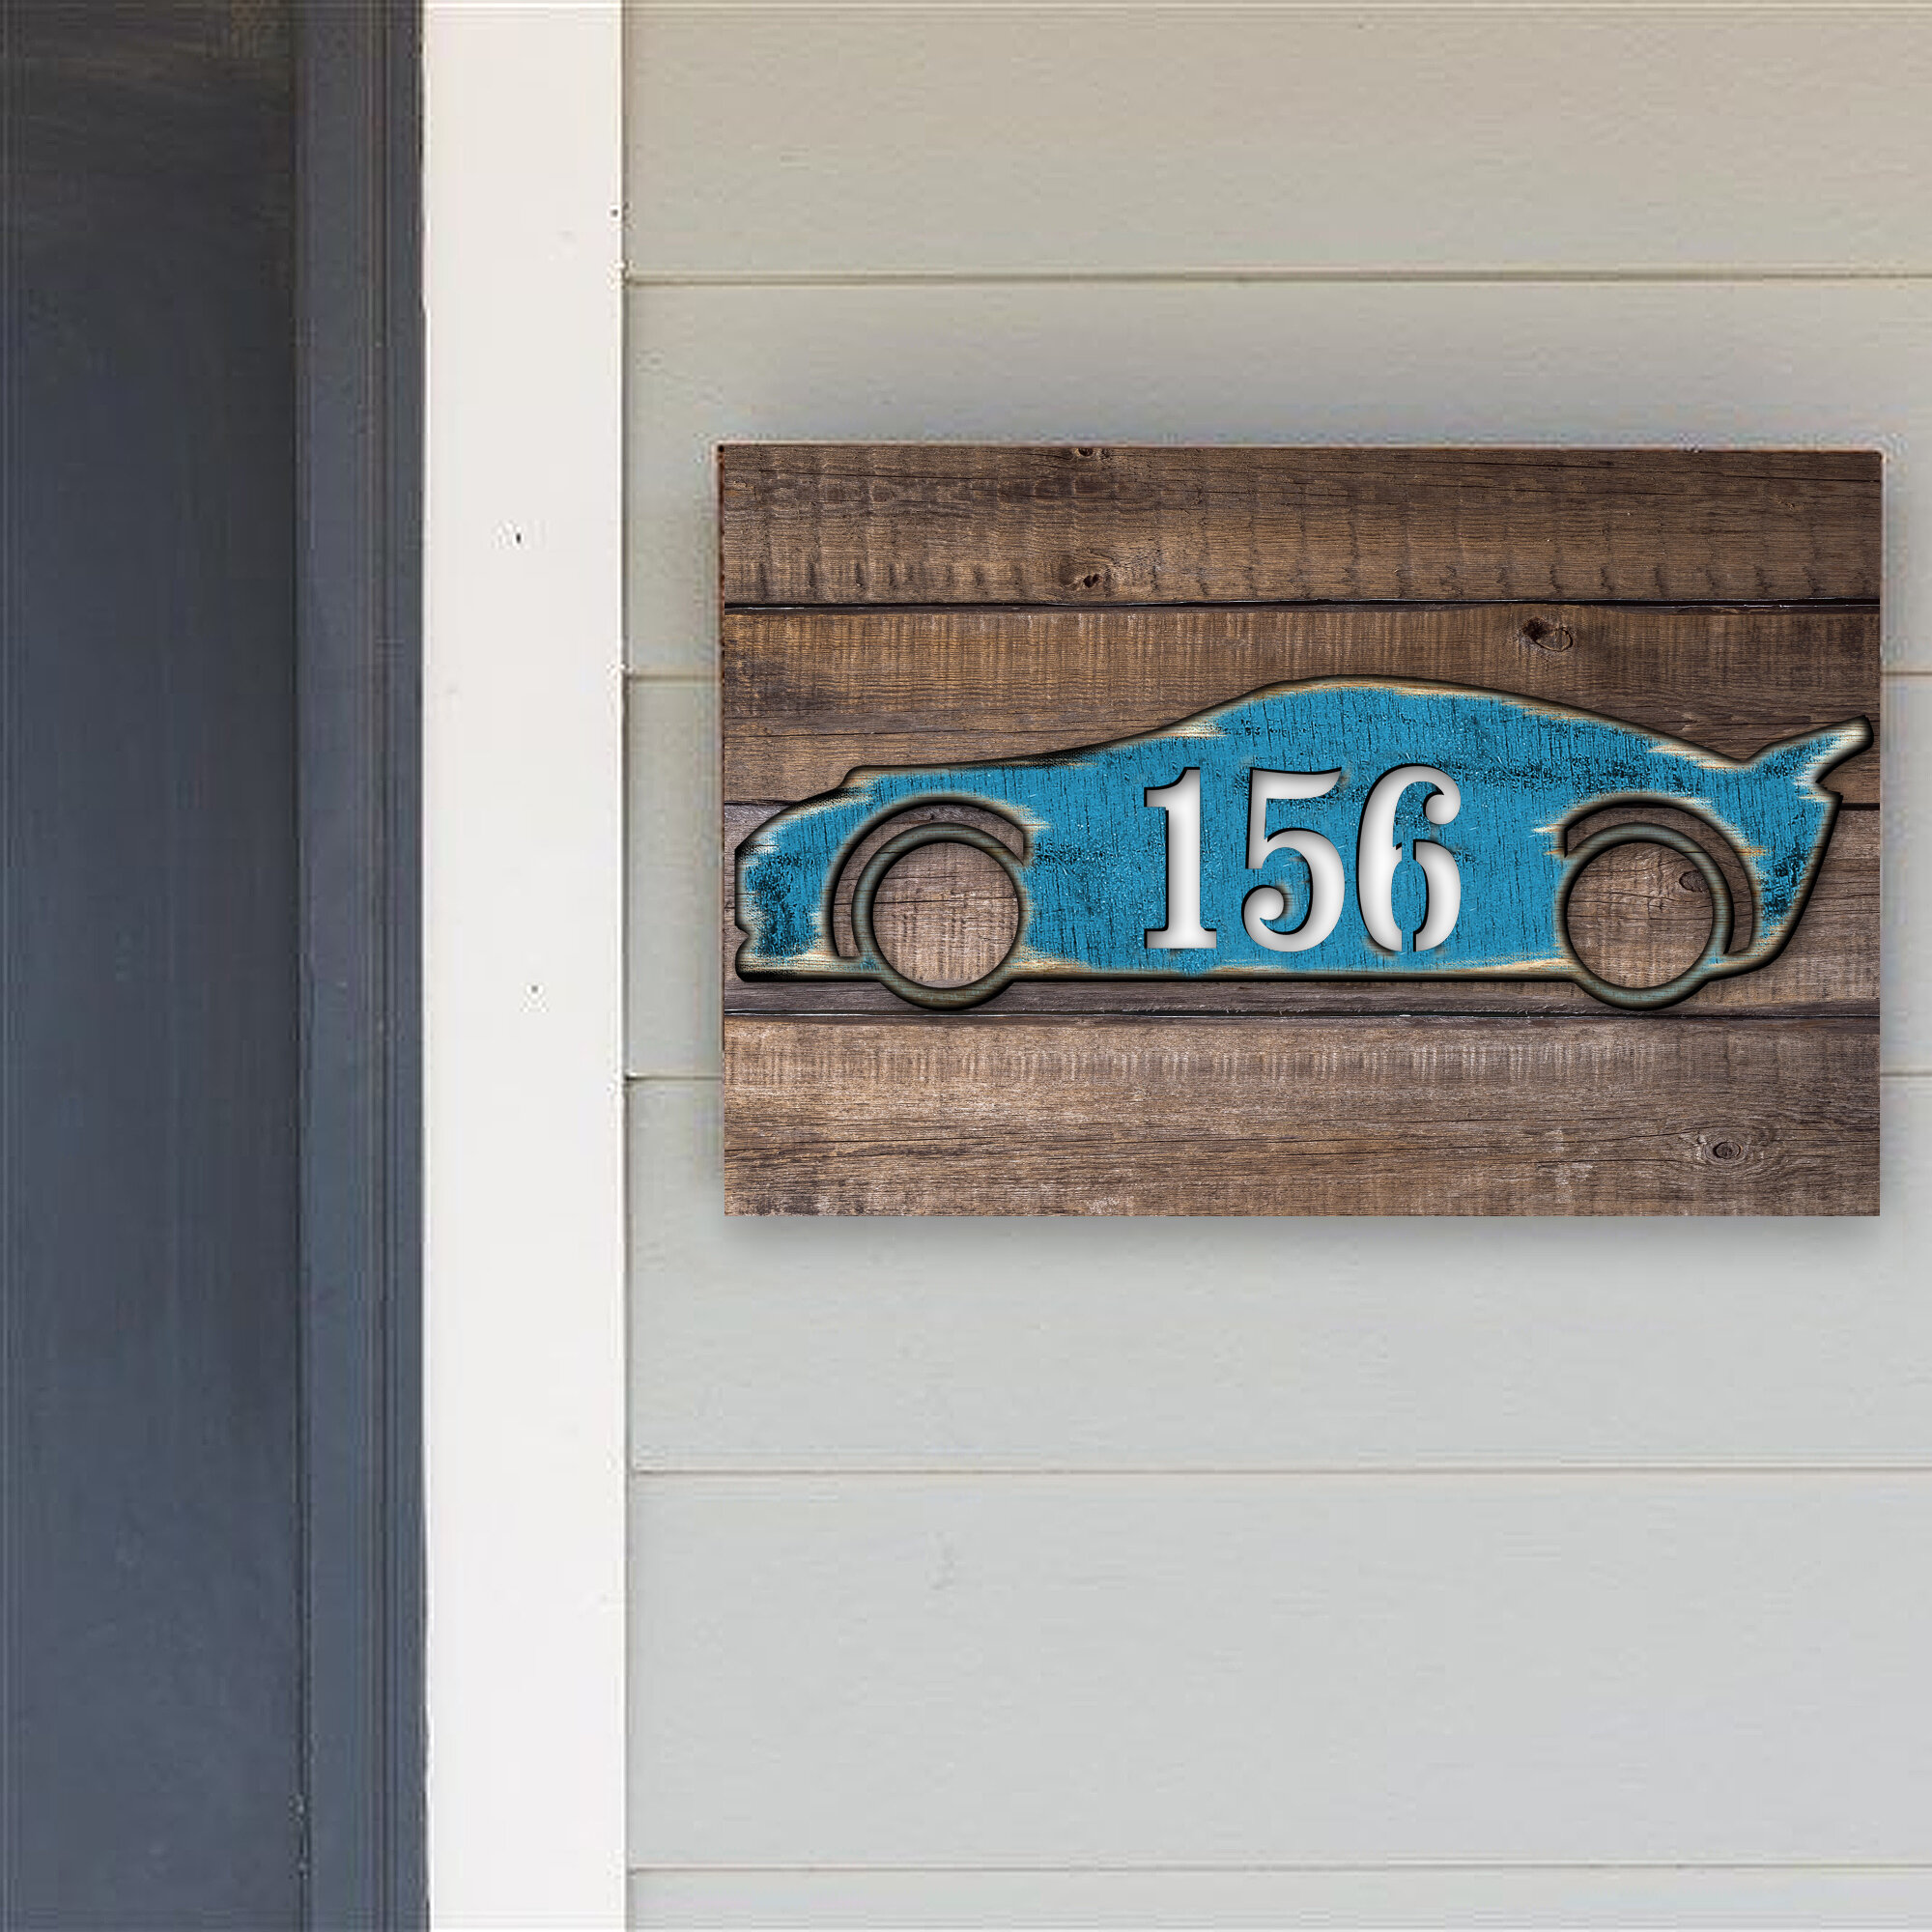 Designocracy Sports Car House Door Mailbox Address Number 1 Line Wall Mount Wayfair